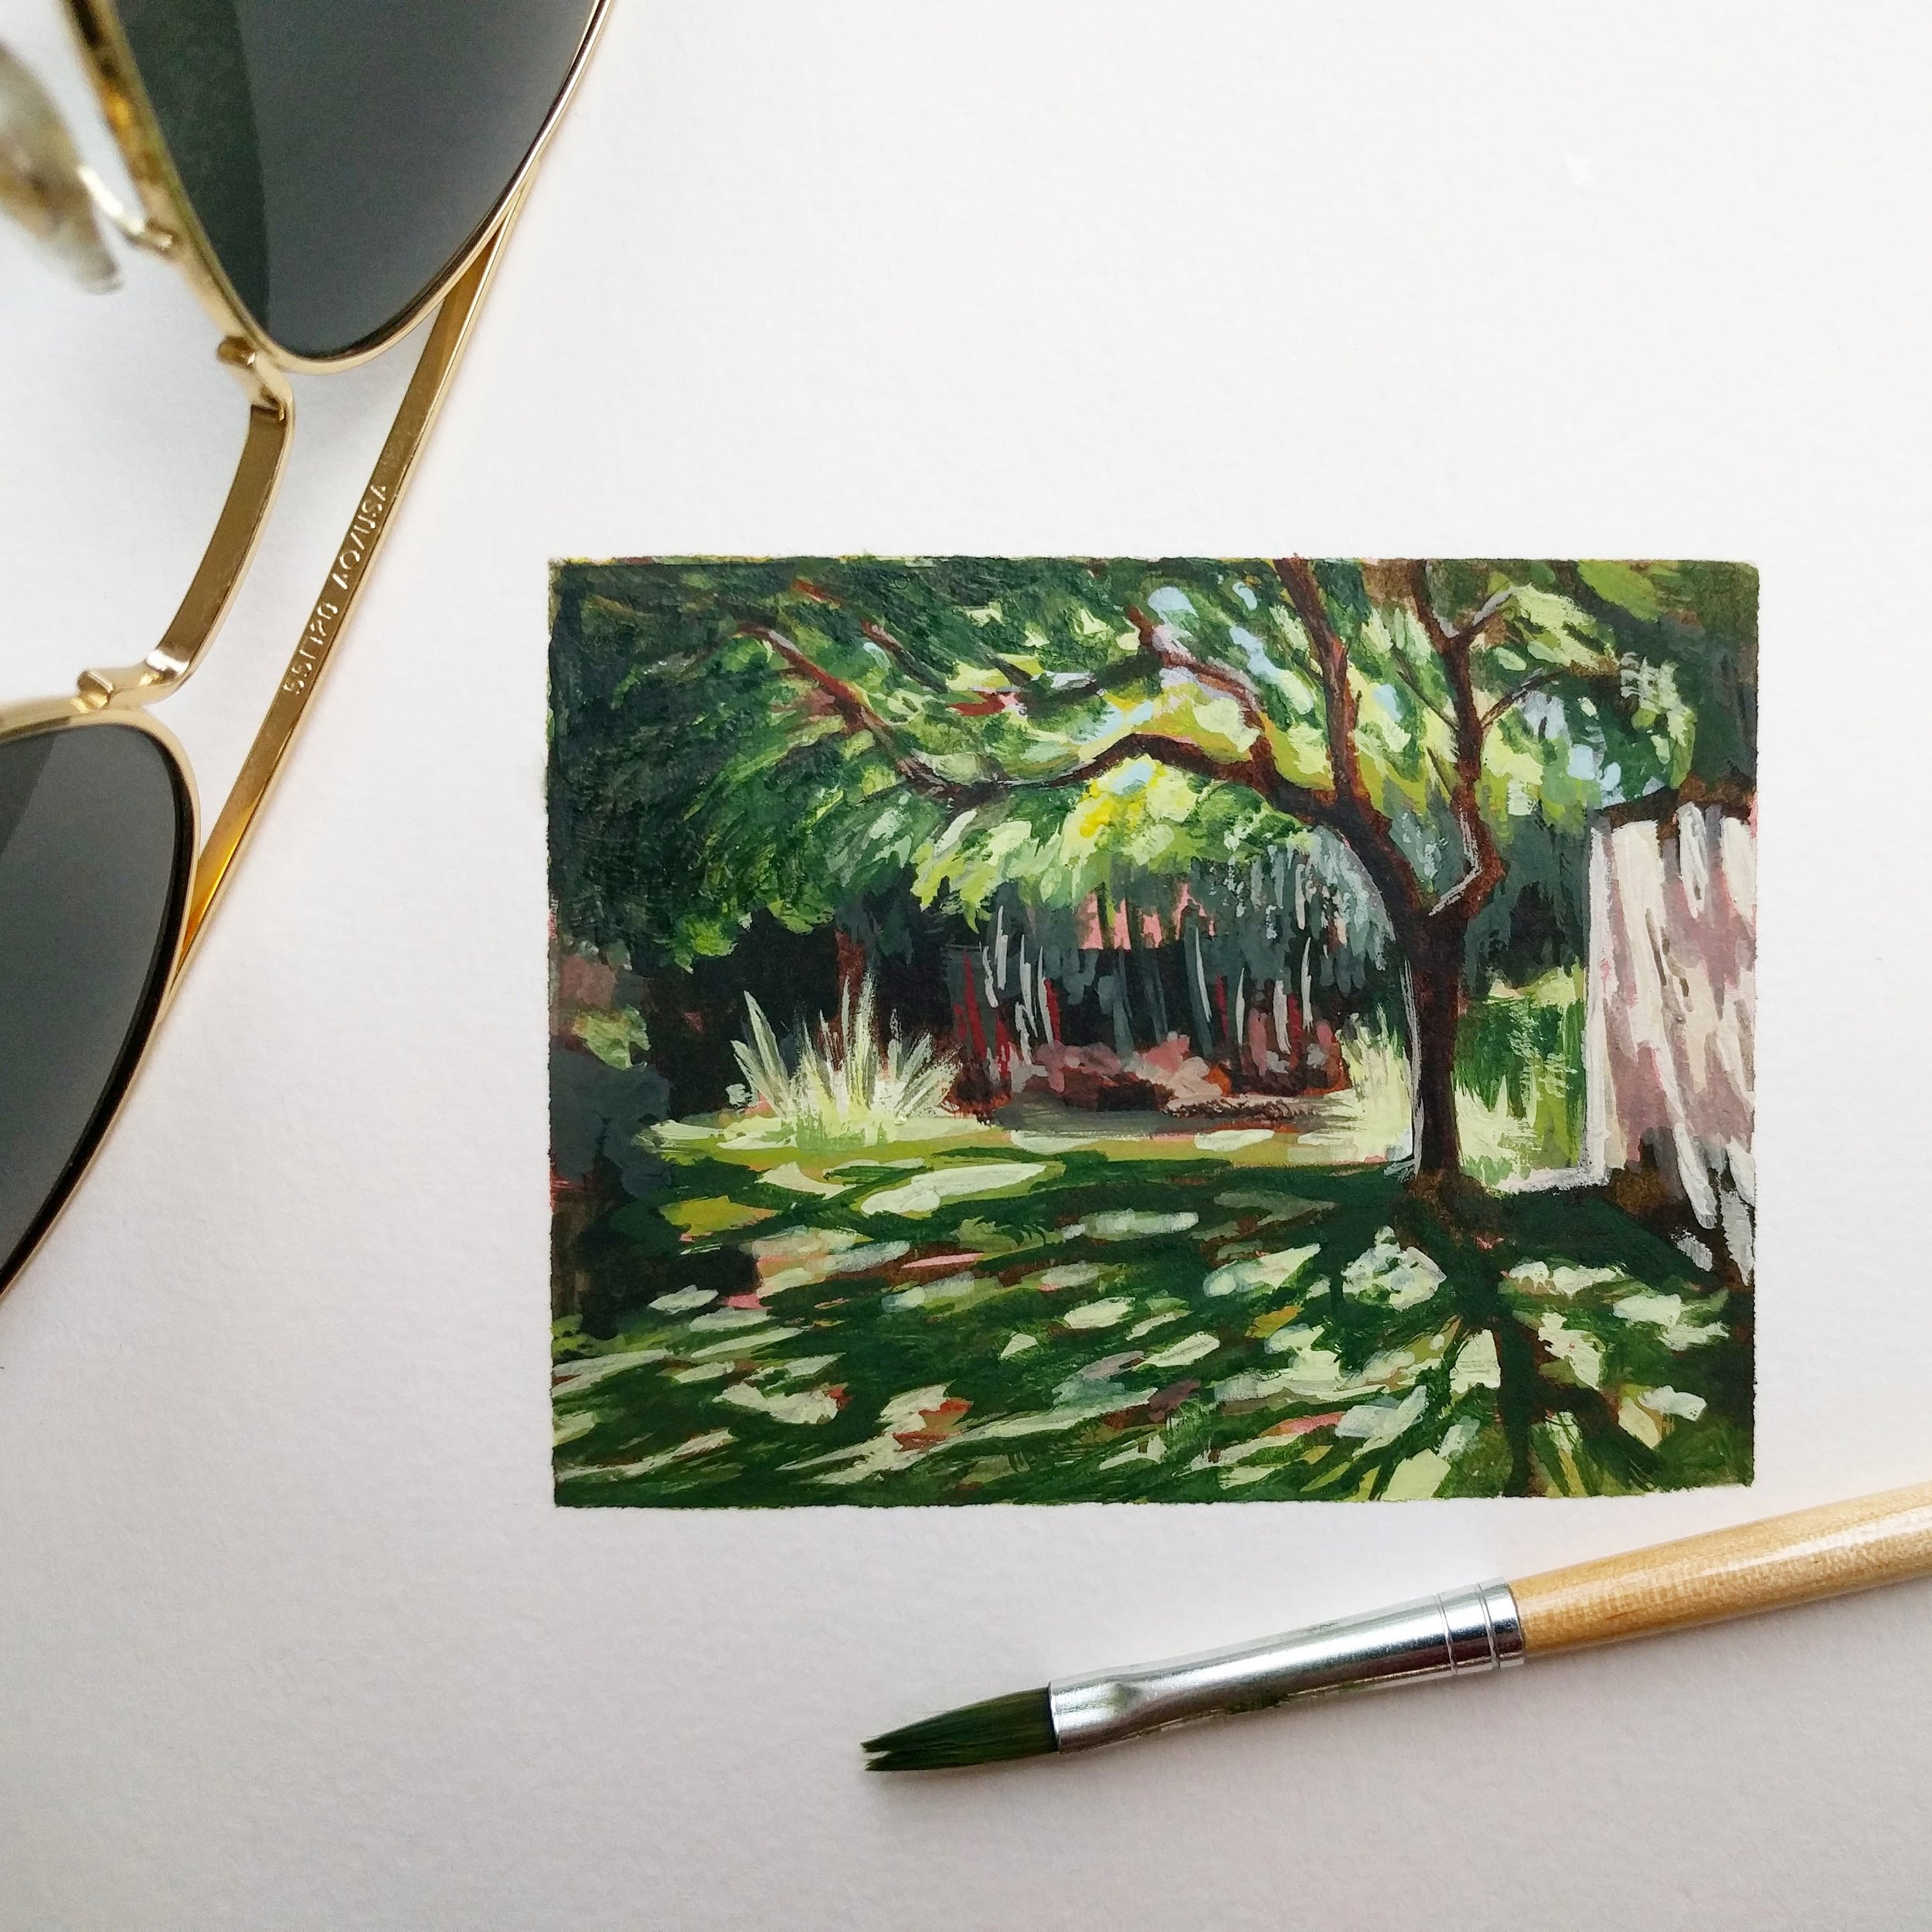 My Small paintings tiny miniature watercolour plein air painting 'Shelter' of shady tree with dappled sunlight shadows sunny garden California summertime - sketchbook view